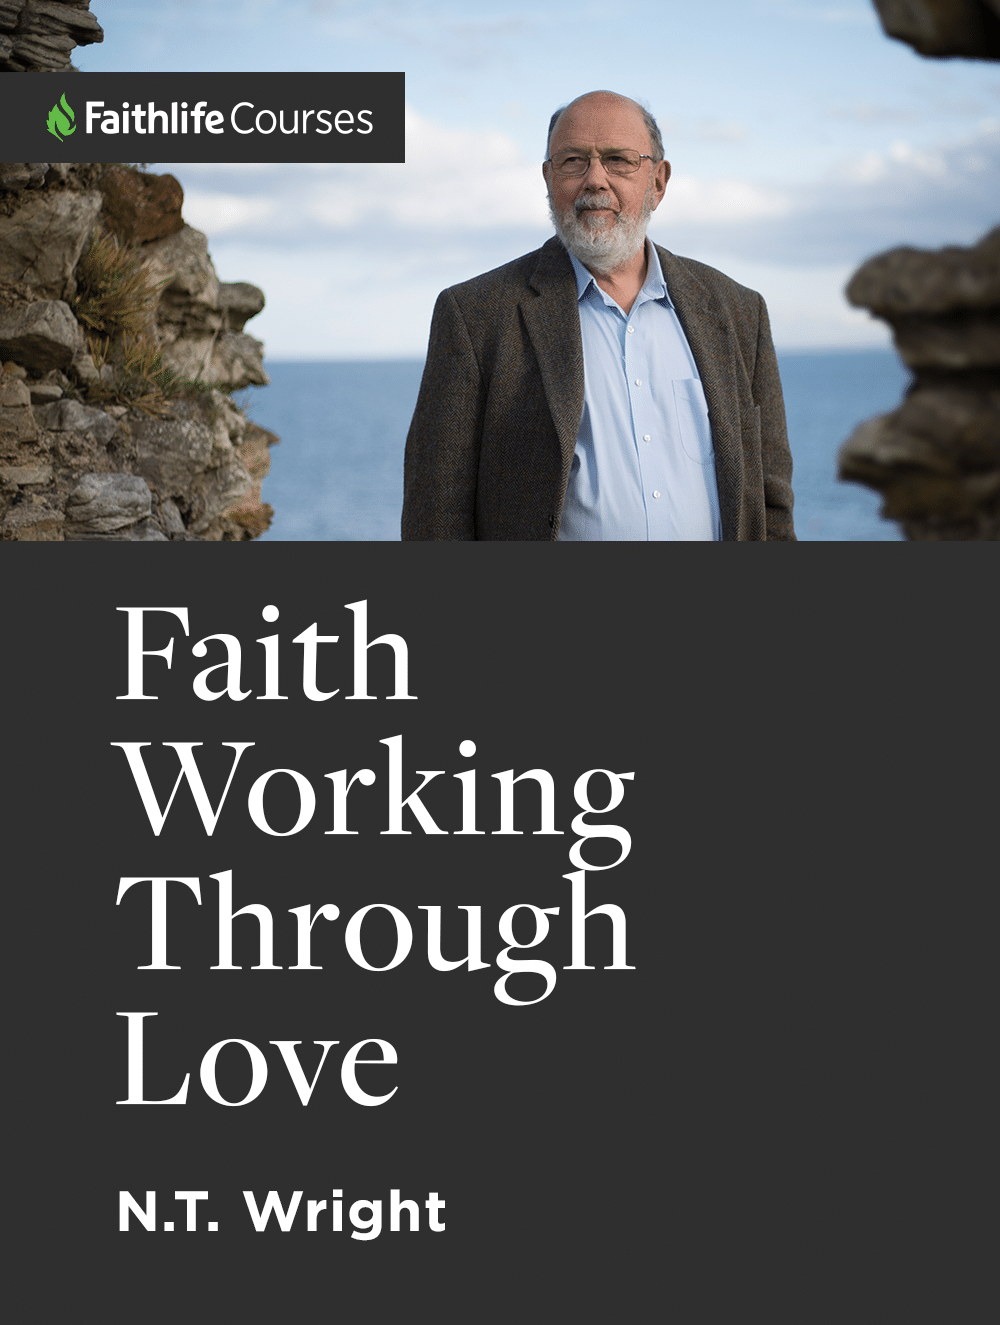 Faith Working Through Love by N.T. Wright (1 hour course)